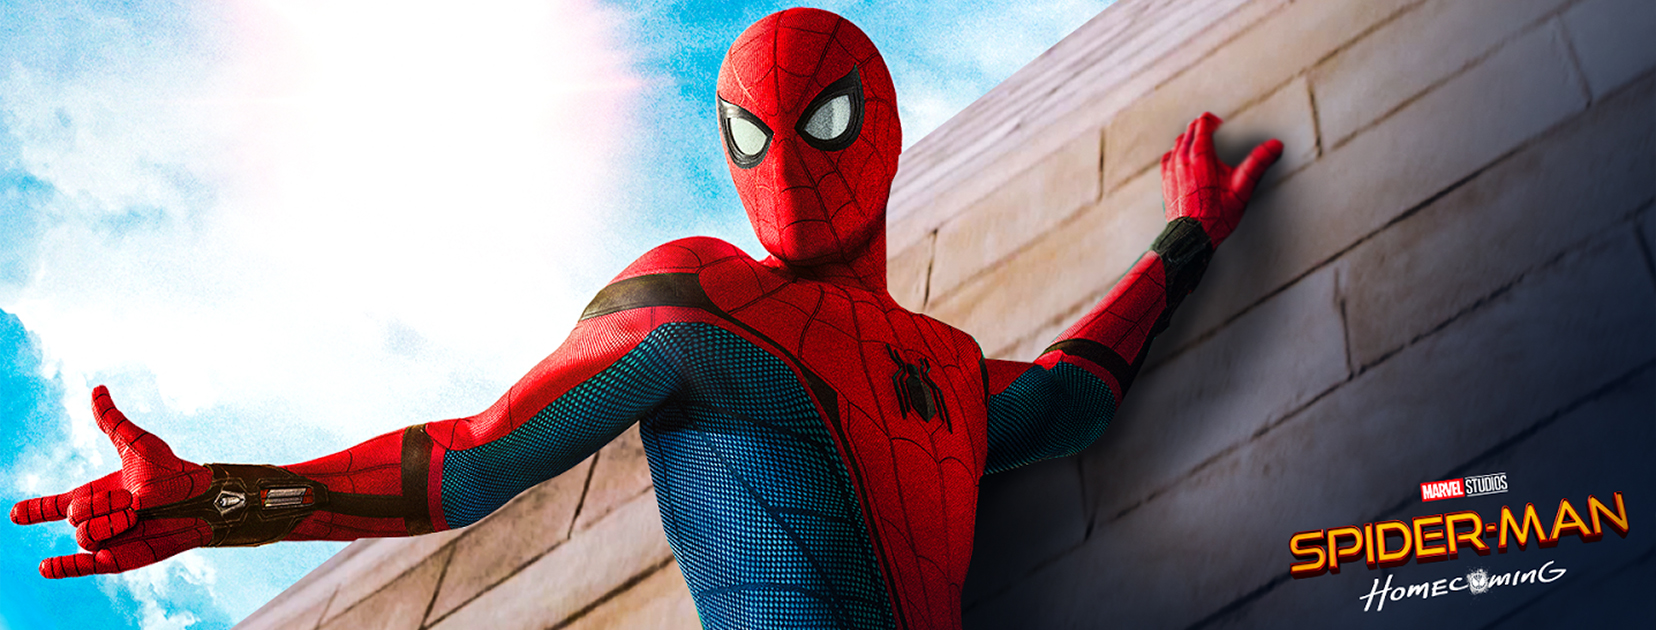 Spiderman Homecoming Banner 2 Kissimmee Utility Authority